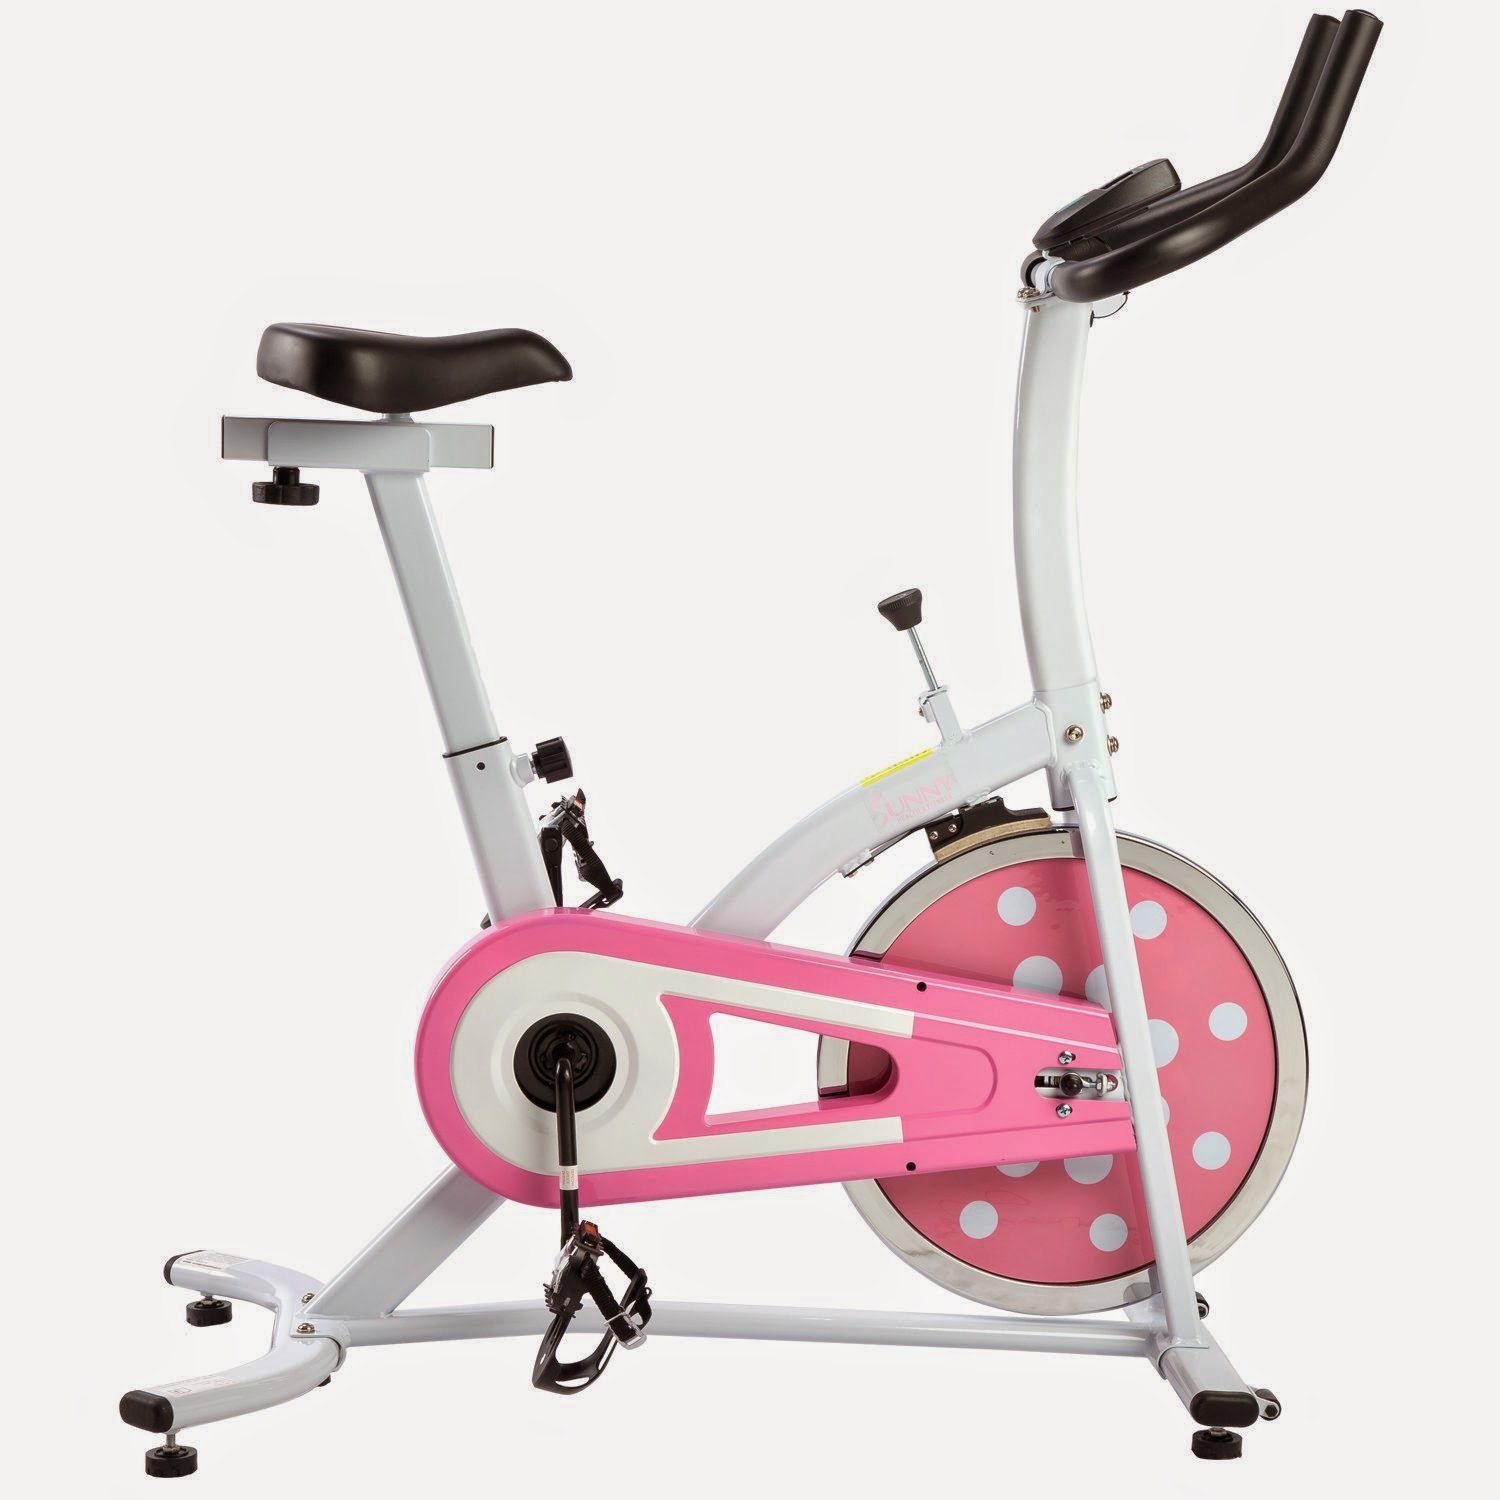 Sunny Health & Fitness Pink Indoor Cycling Bike / Spin Bike, picture, review features & specifications